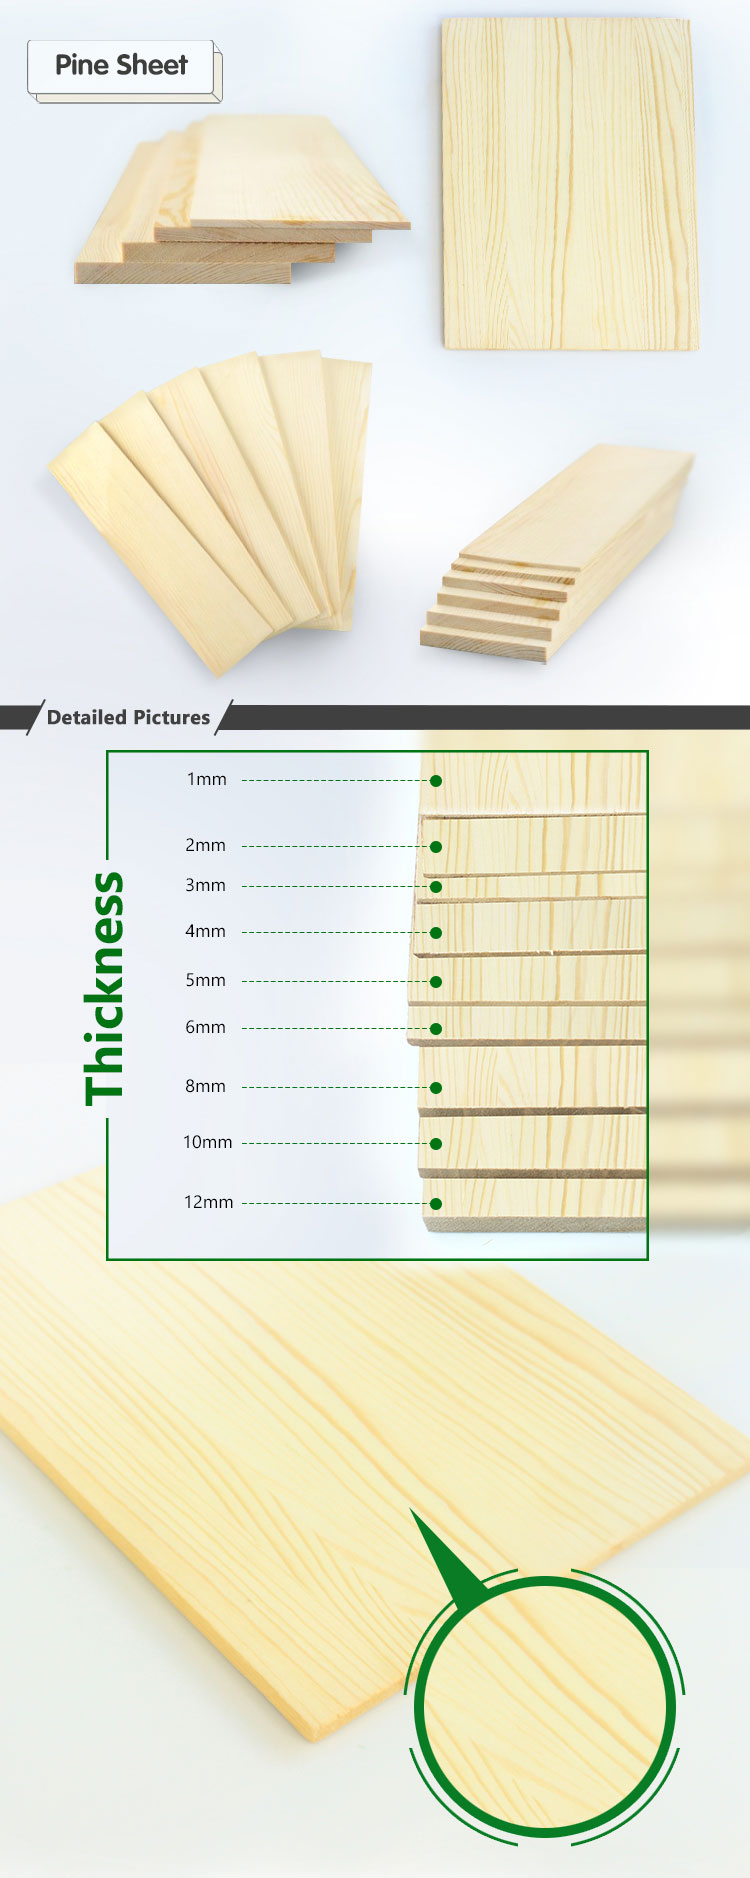 1mm 1 5mm 2 Mm 2 5mm 3mm 4mm 5mm Plank Pine Wood Planks